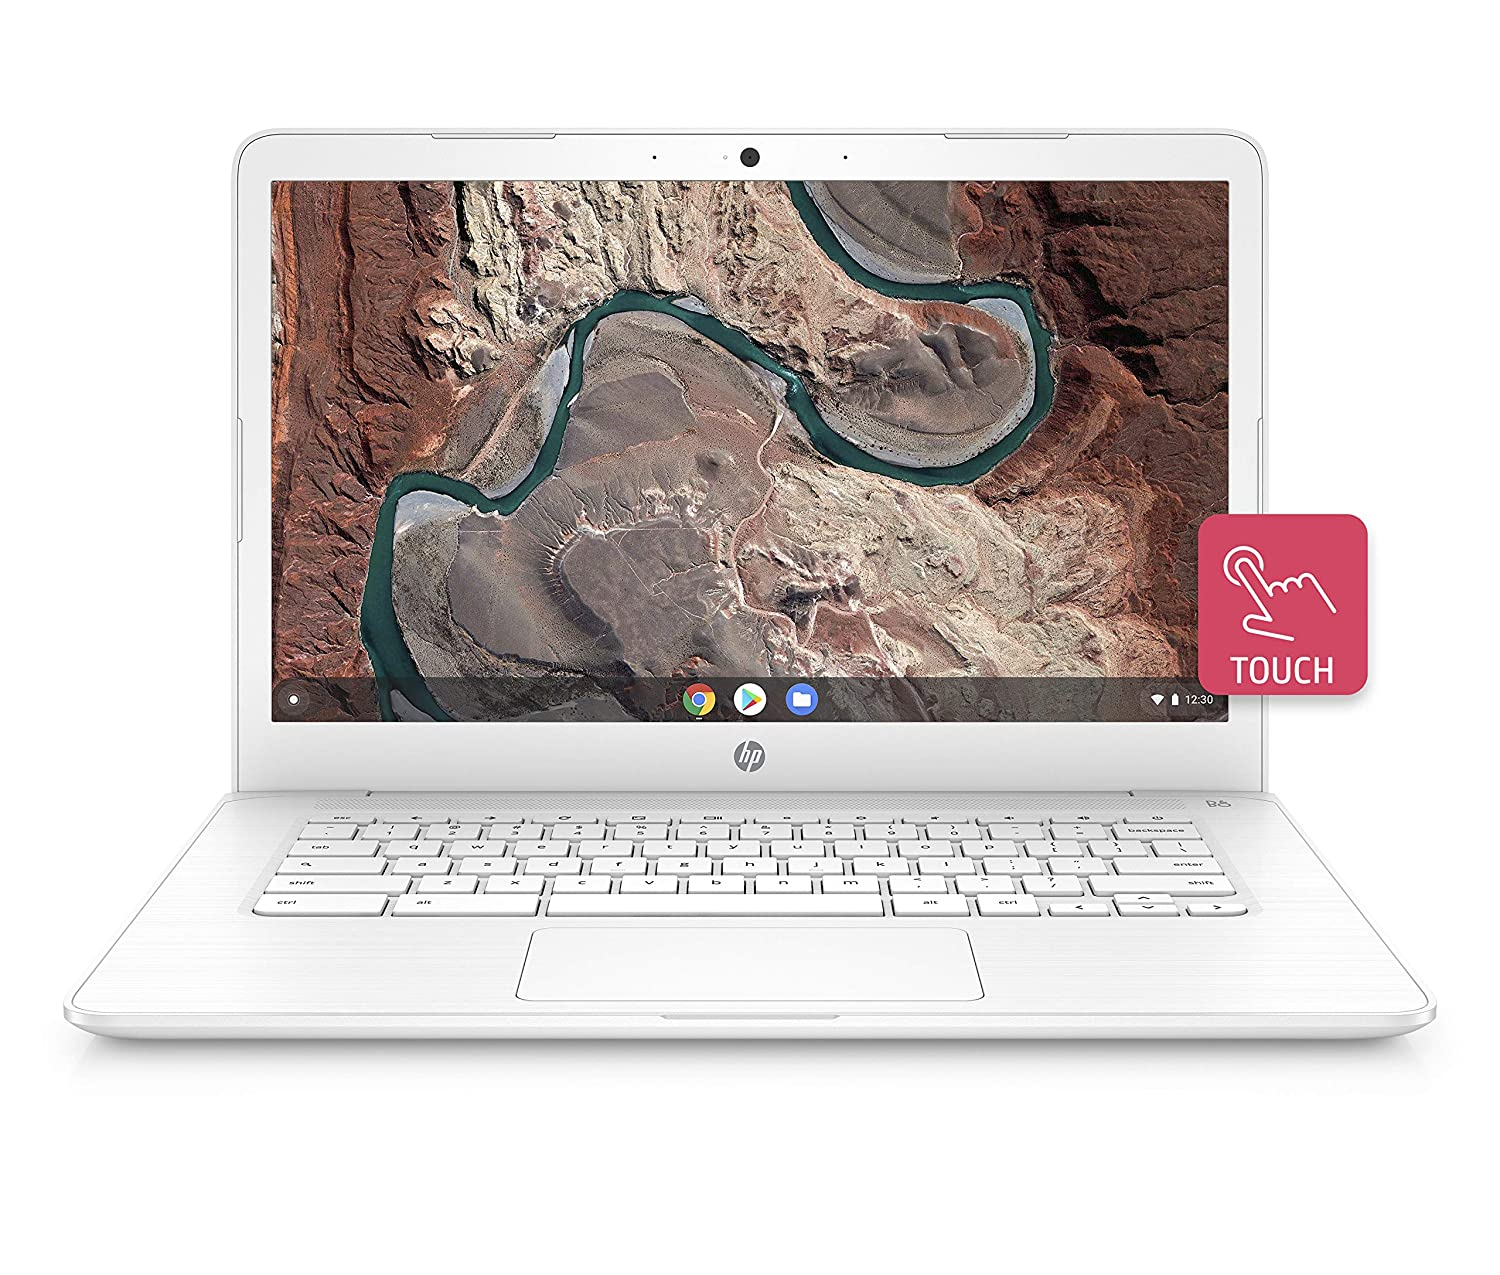 HP Chromebook 14-inch Laptop with 180-degree Hinge, Touchscreen Display, AMD Dual-Core A4-9120 Processor, 4 GB SDRAM, 32 GB eMMC Storage, Chrome OS (14-db0070nr, Snow White)